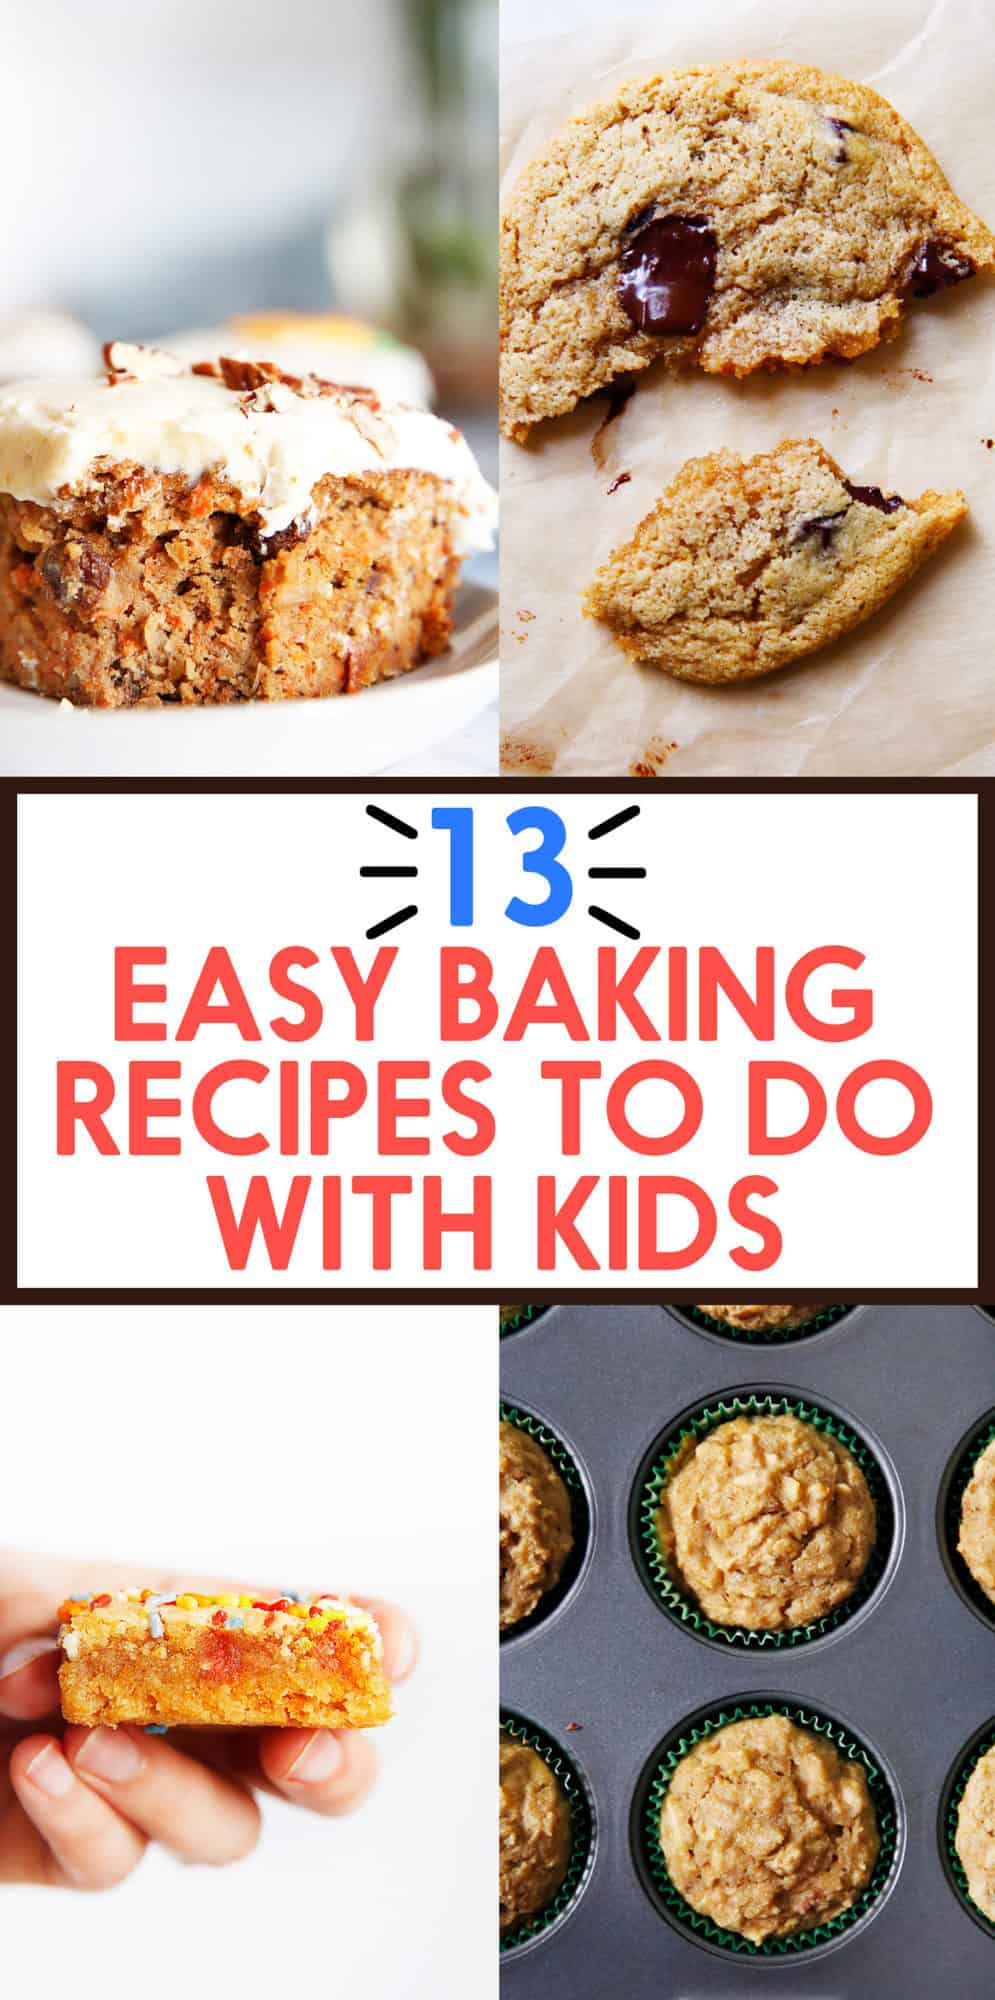 13 Easy Baking Recipes to do with Kids